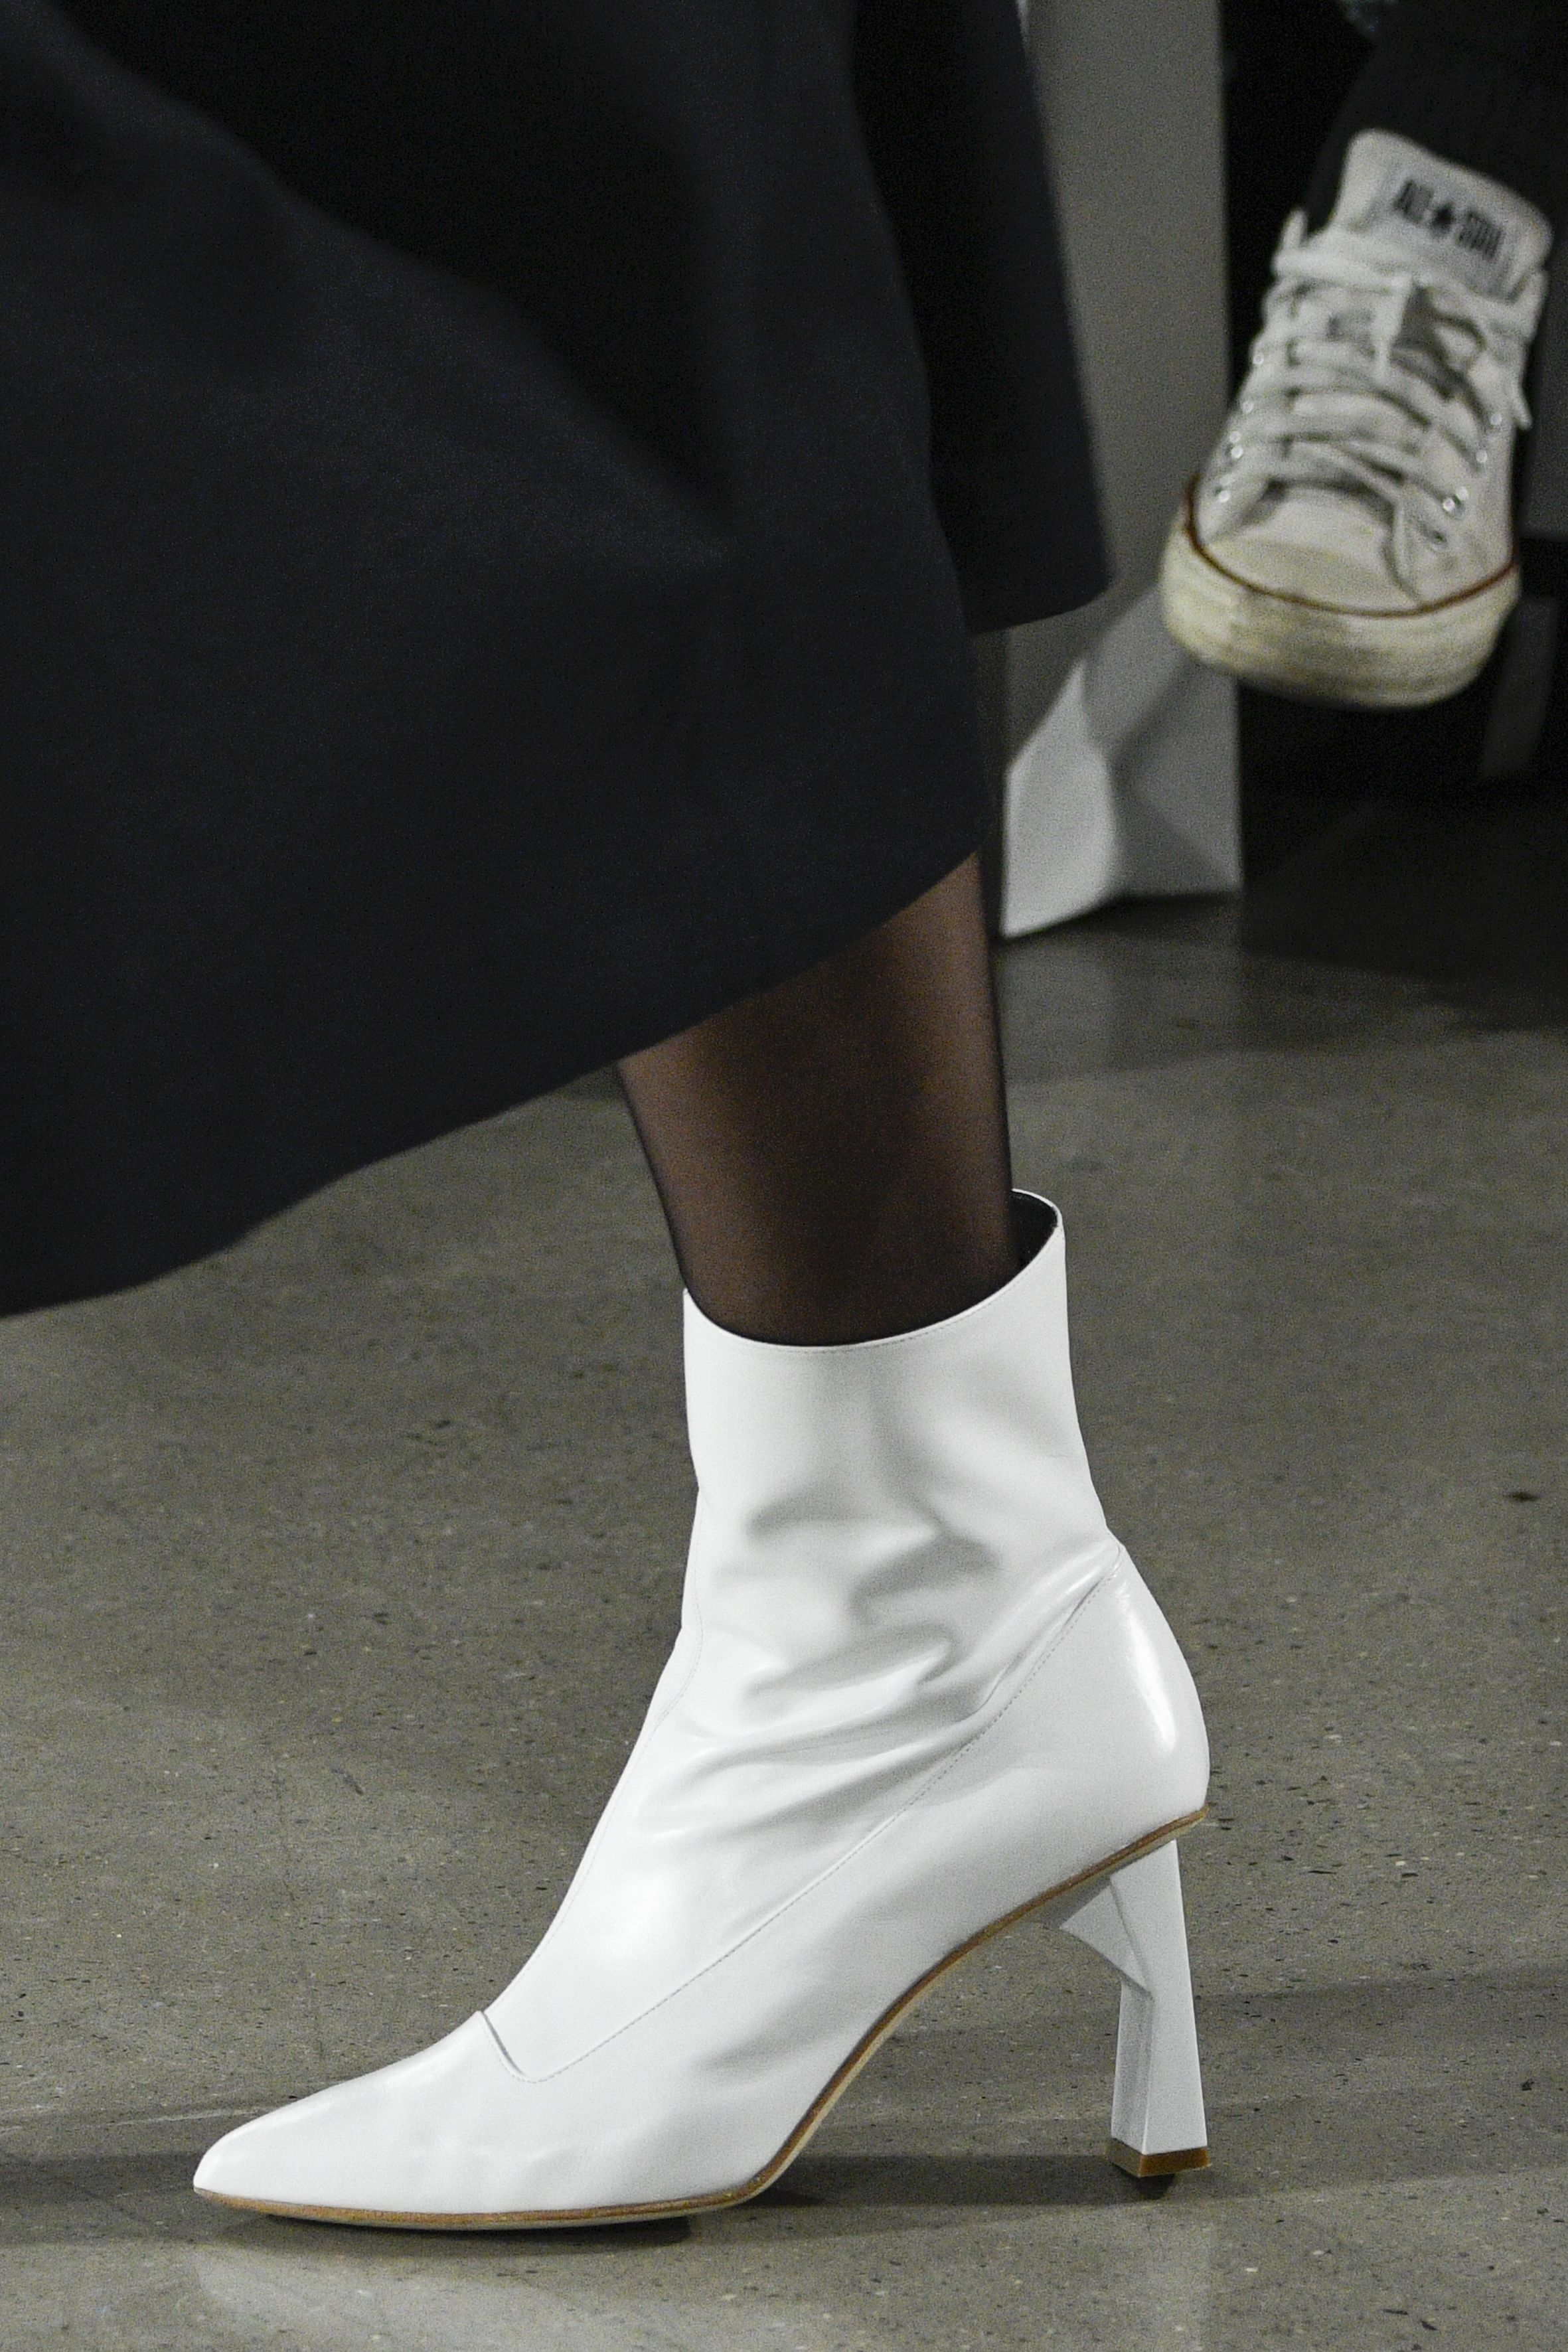 """<p>You know how we said <a href=""""http://www.marieclaire.com/fashion/news/g4070/best-white-boots/"""" target=""""_blank"""" data-tracking-id=""""recirc-text-link"""">everybody needswhite boots</a>? Make that """"white boots with a carved heel.""""</p>"""